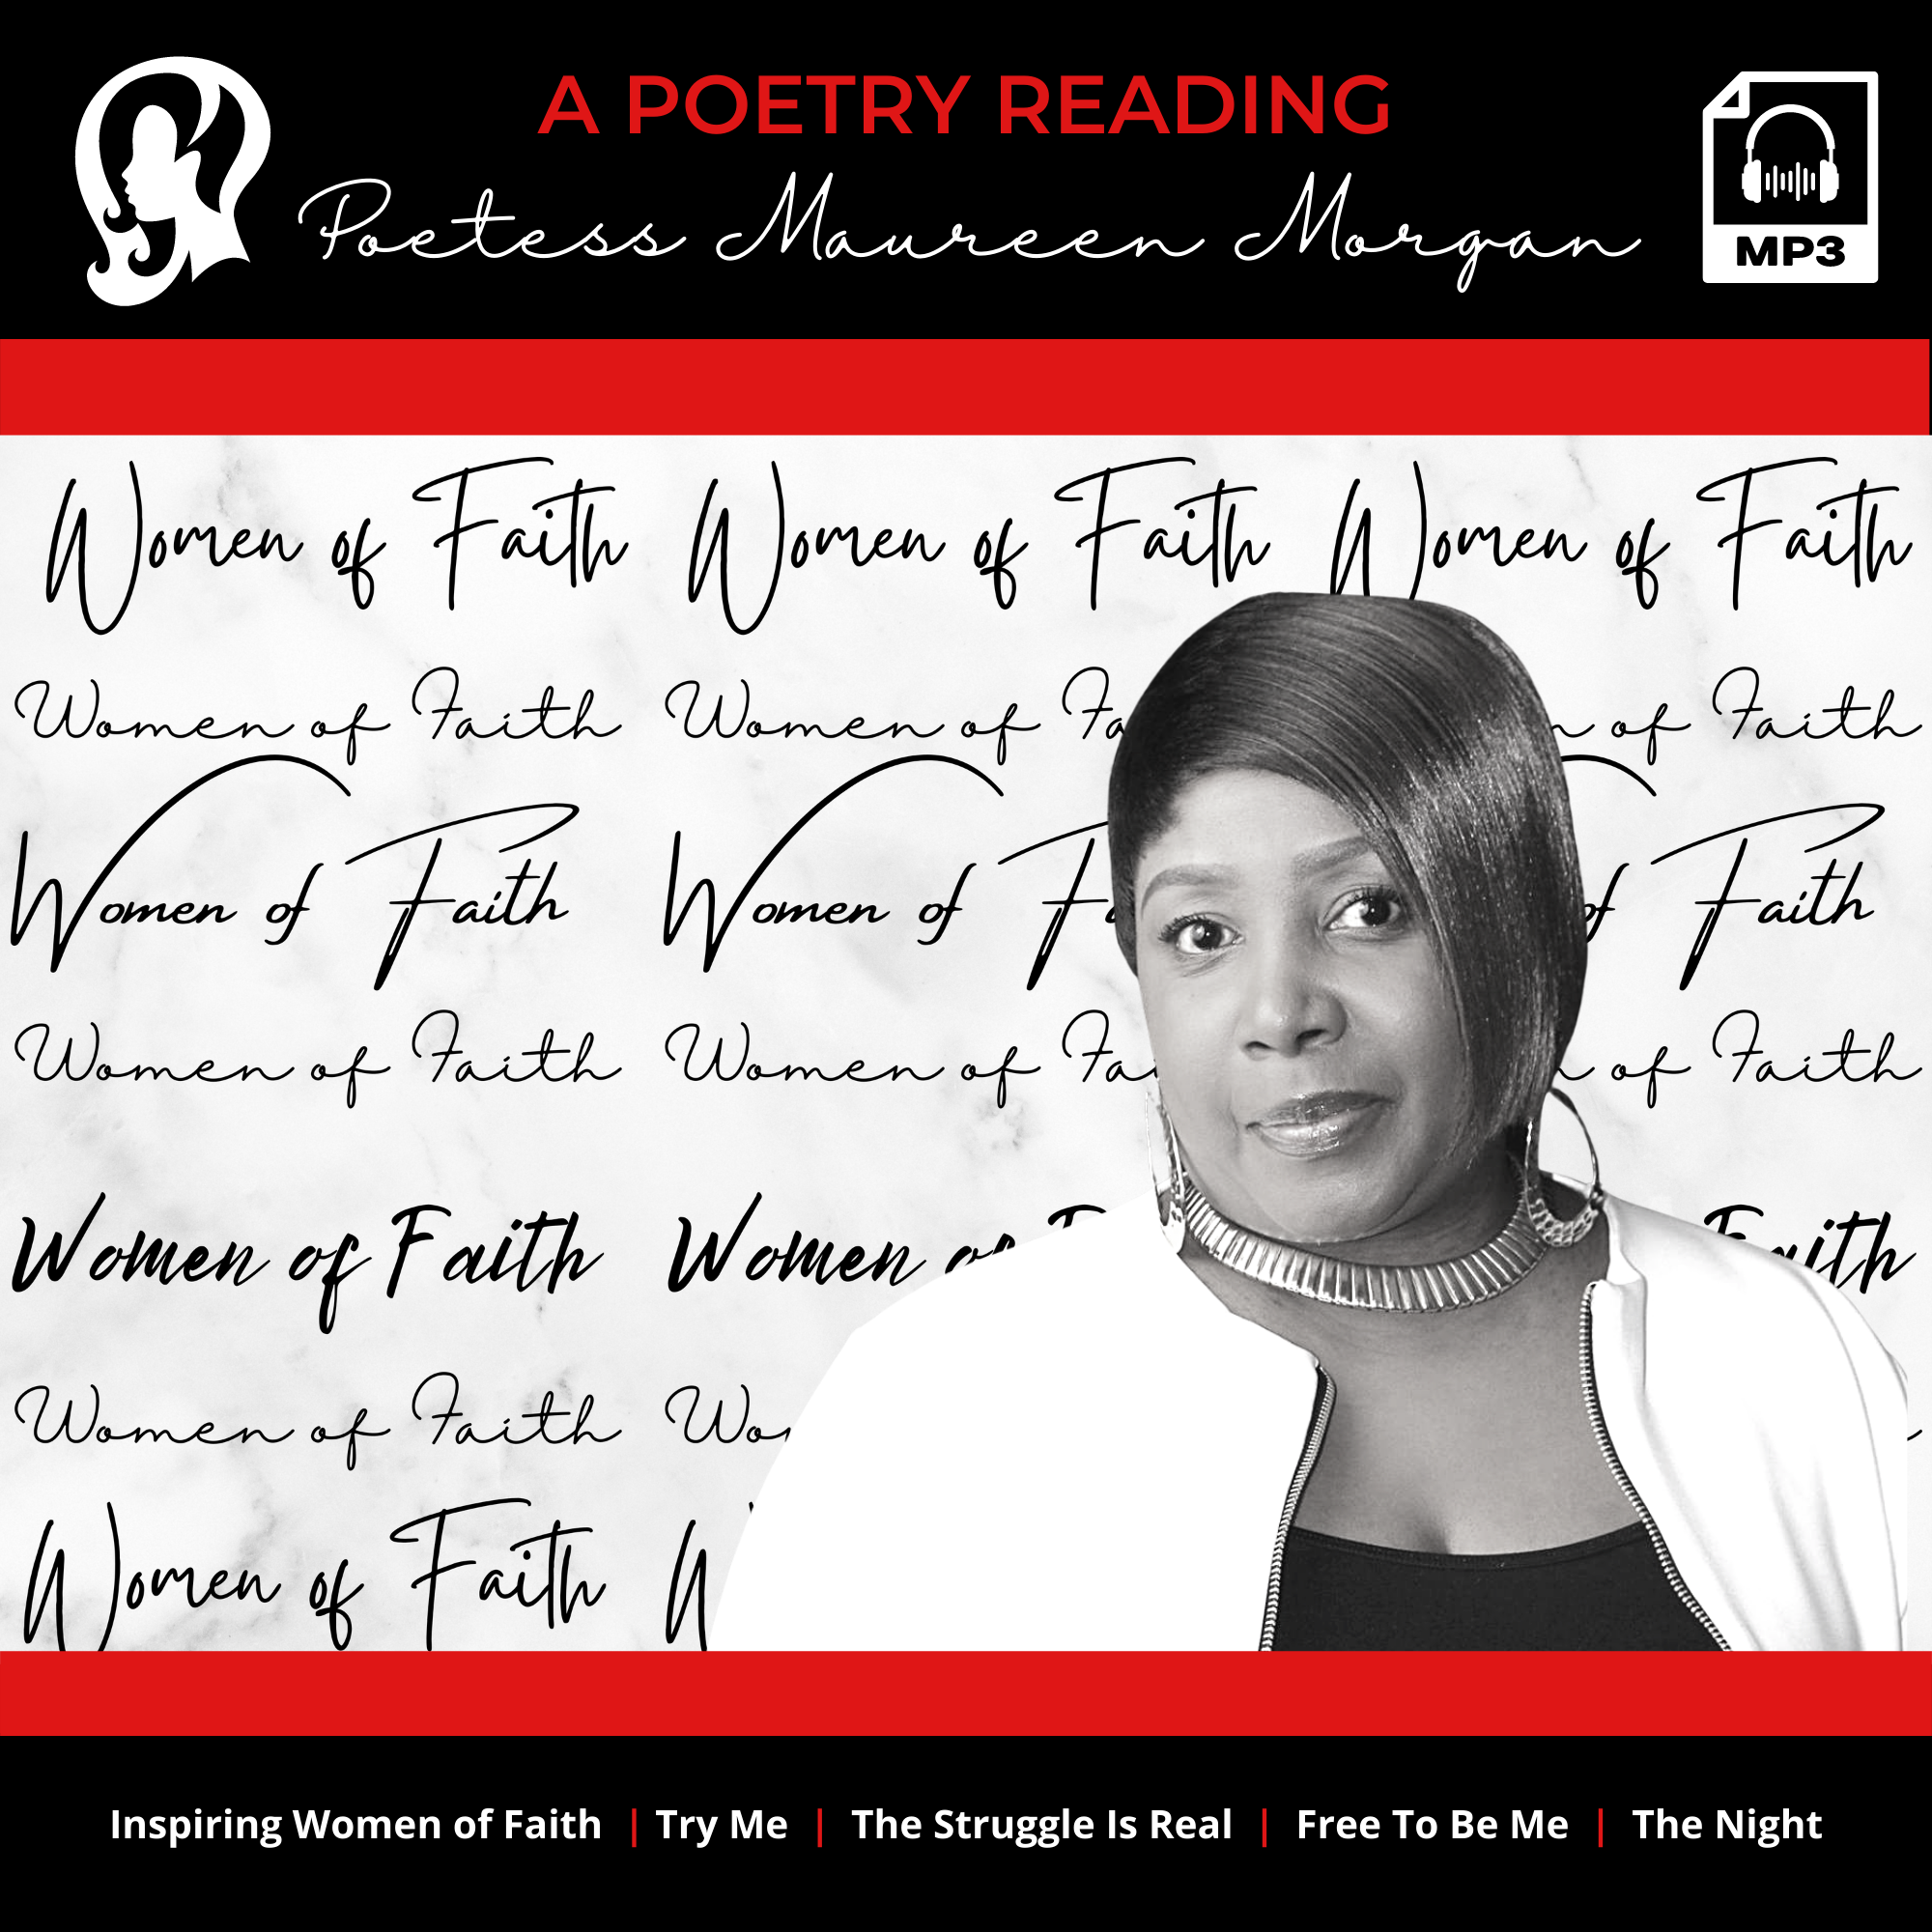 EP - A Poetry Reading / Poetess Maureen Morgan